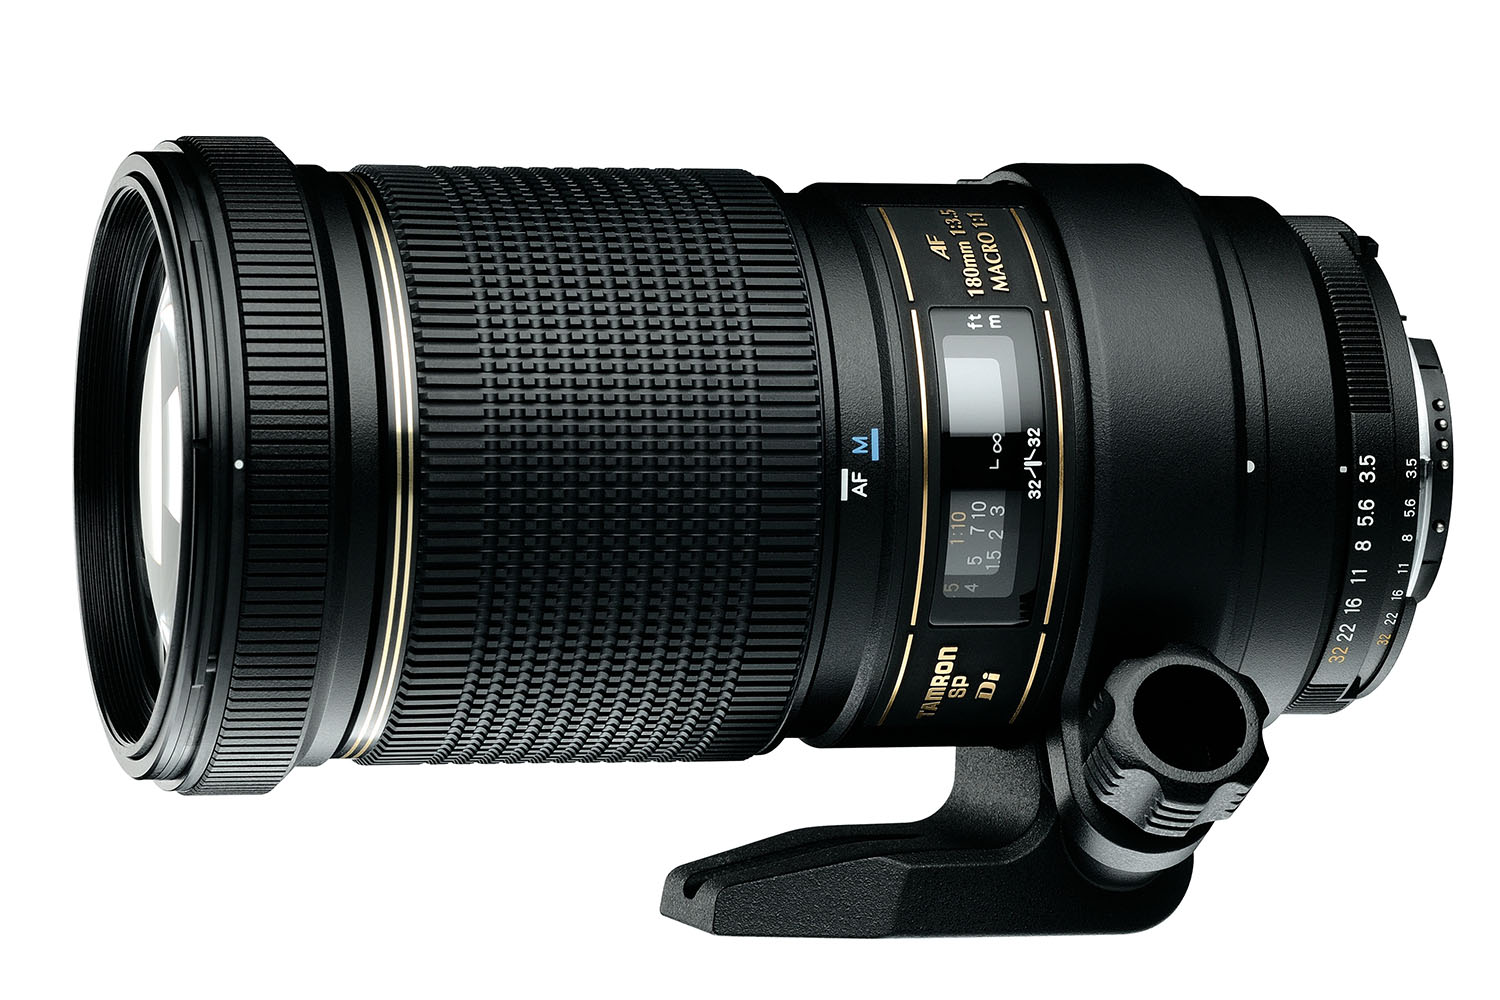 The telephoto Tamron SP AF 180mm f/3.5 DI LD IF Macro